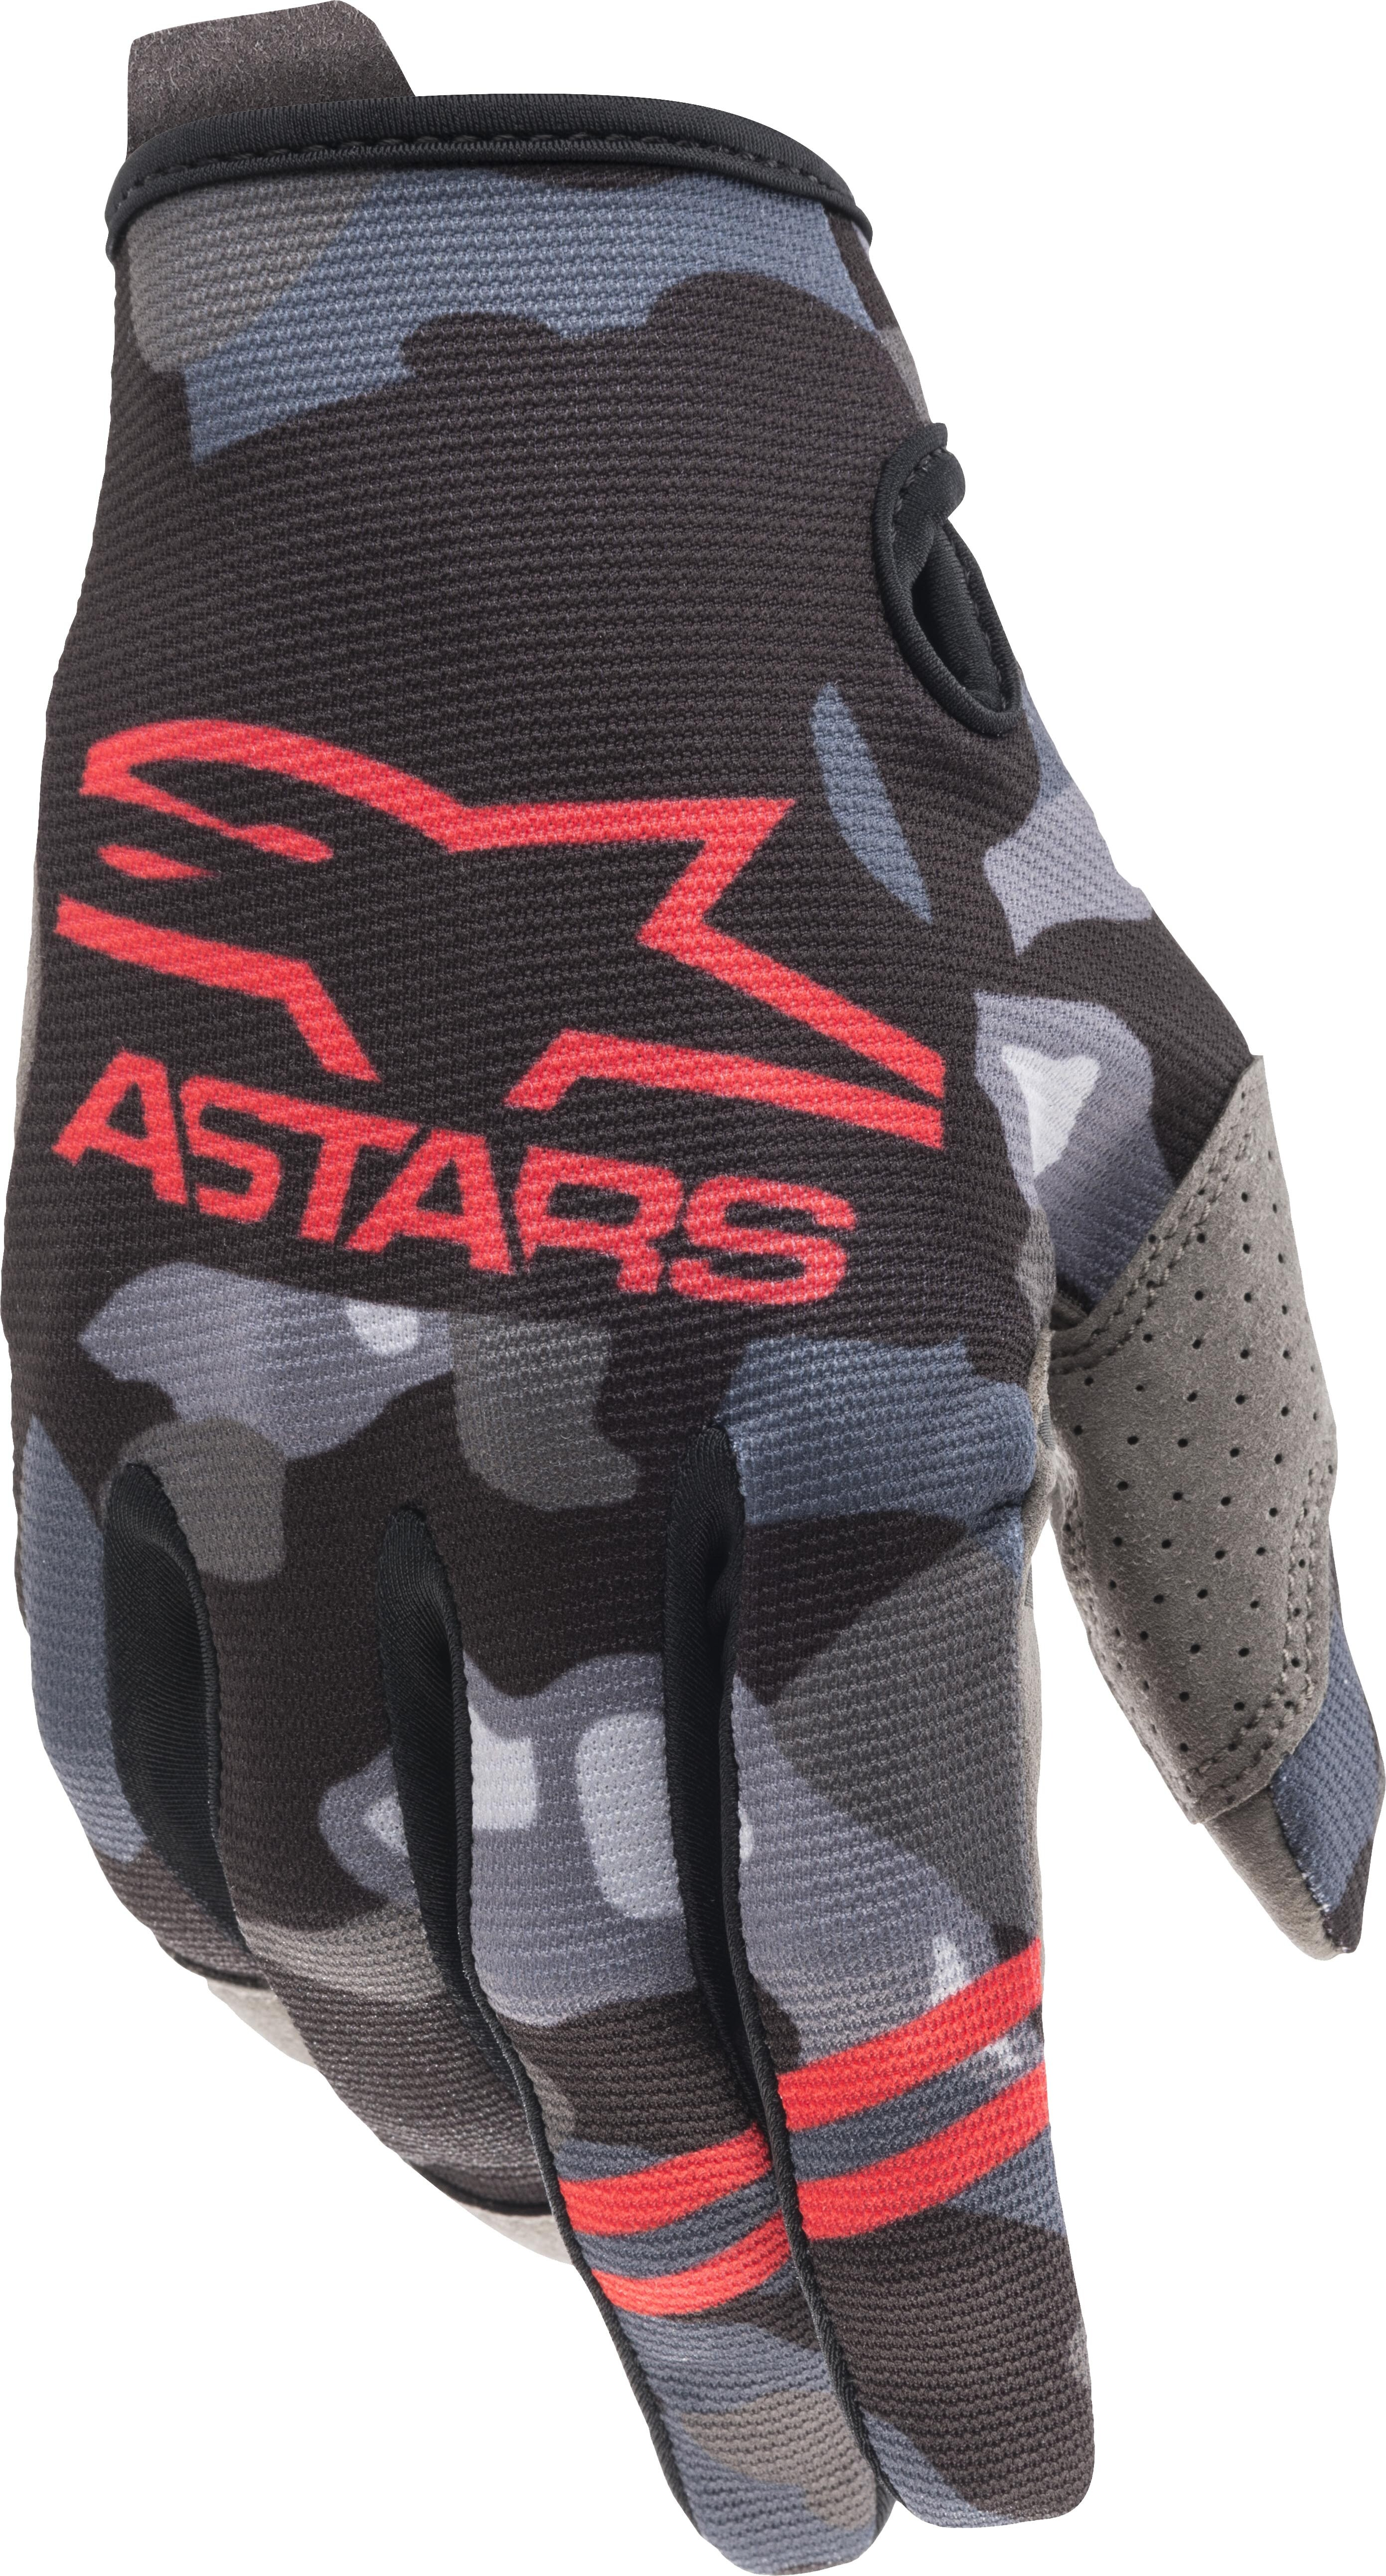 YOUTH RADAR GLOVES GREY CAMO/ RED FLUO 2XS